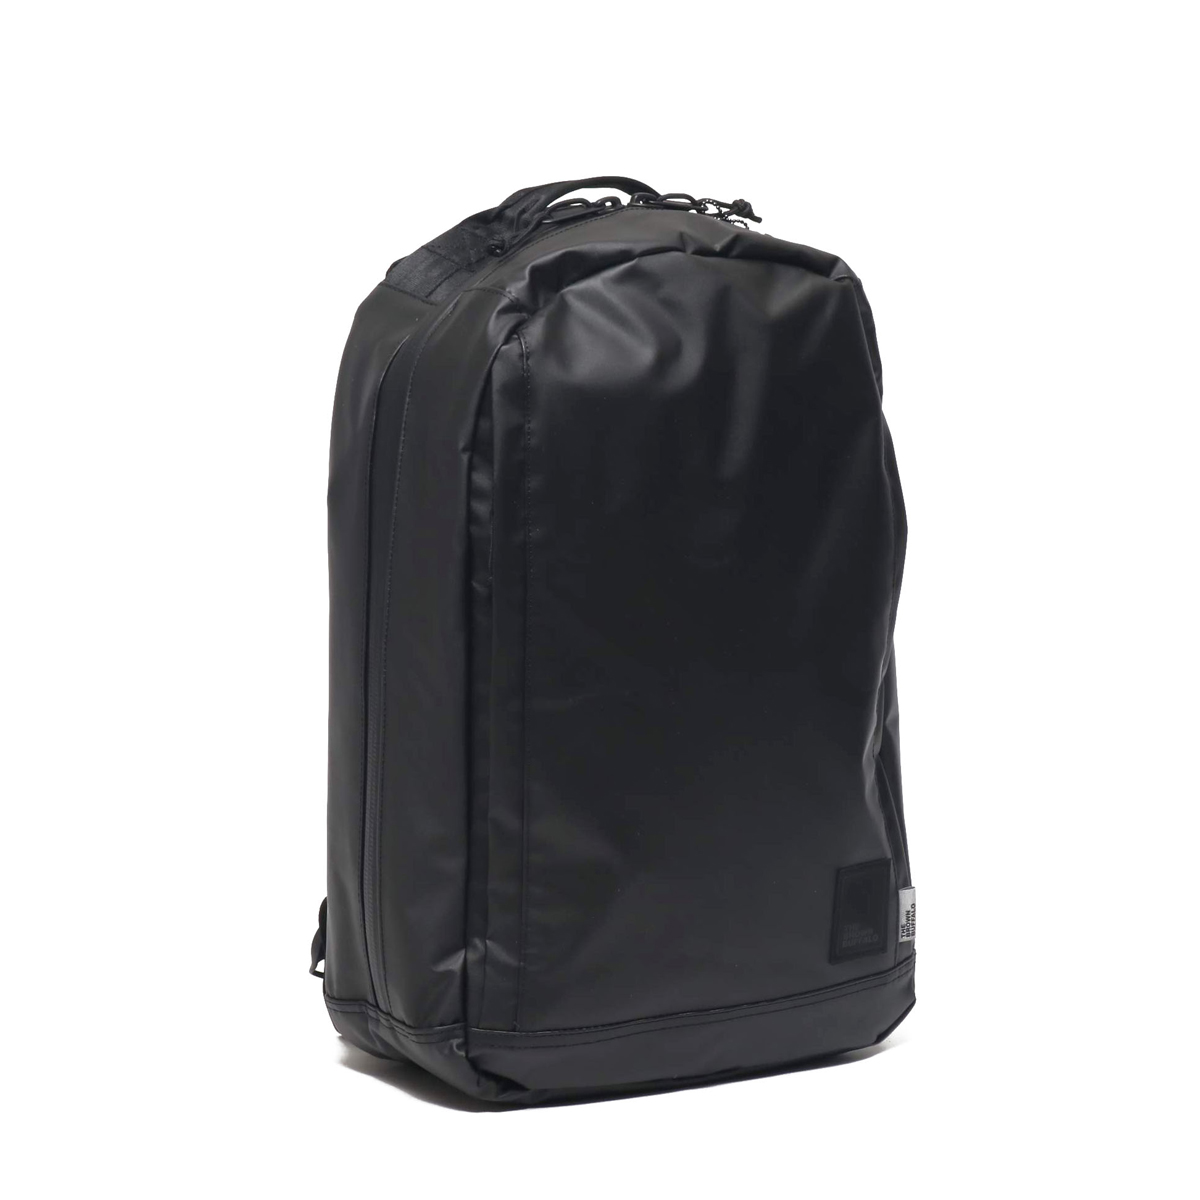 THE BROWN BUFFALO CONCEAL BACKPACK(ザ ブラウン バッファロー コンシェルバックパック)STORMPROOF BLACK【メンズ レディース バックパック】19FA-I